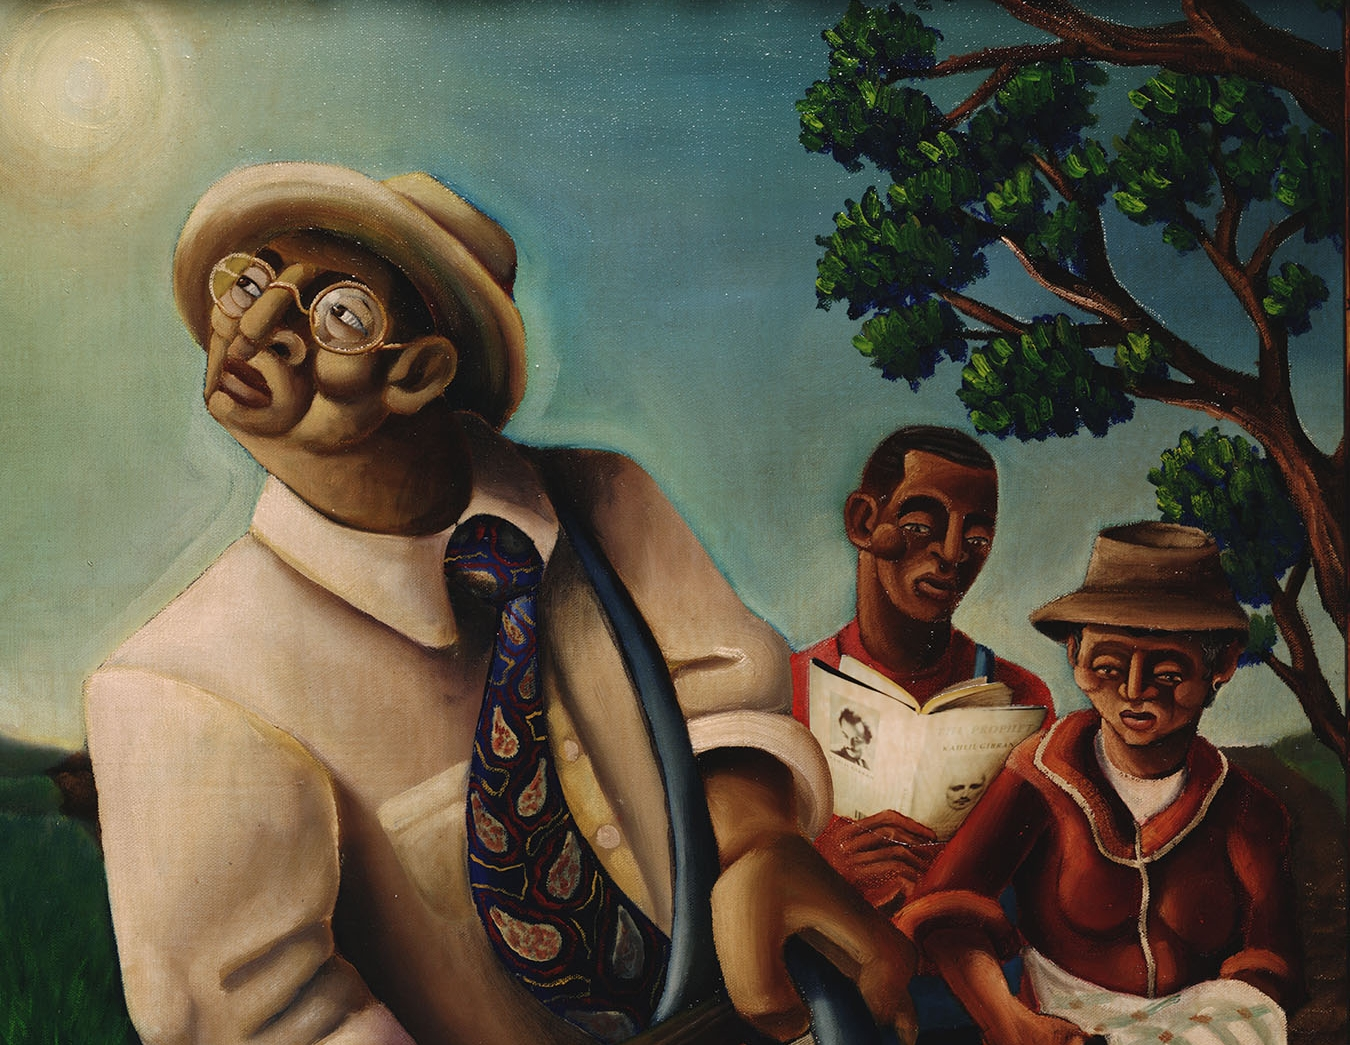 A figure wearing a white shirt, blue patterned tie, and white hat cranes toward the sun. Two figures beyond them and before a tree stare forward.